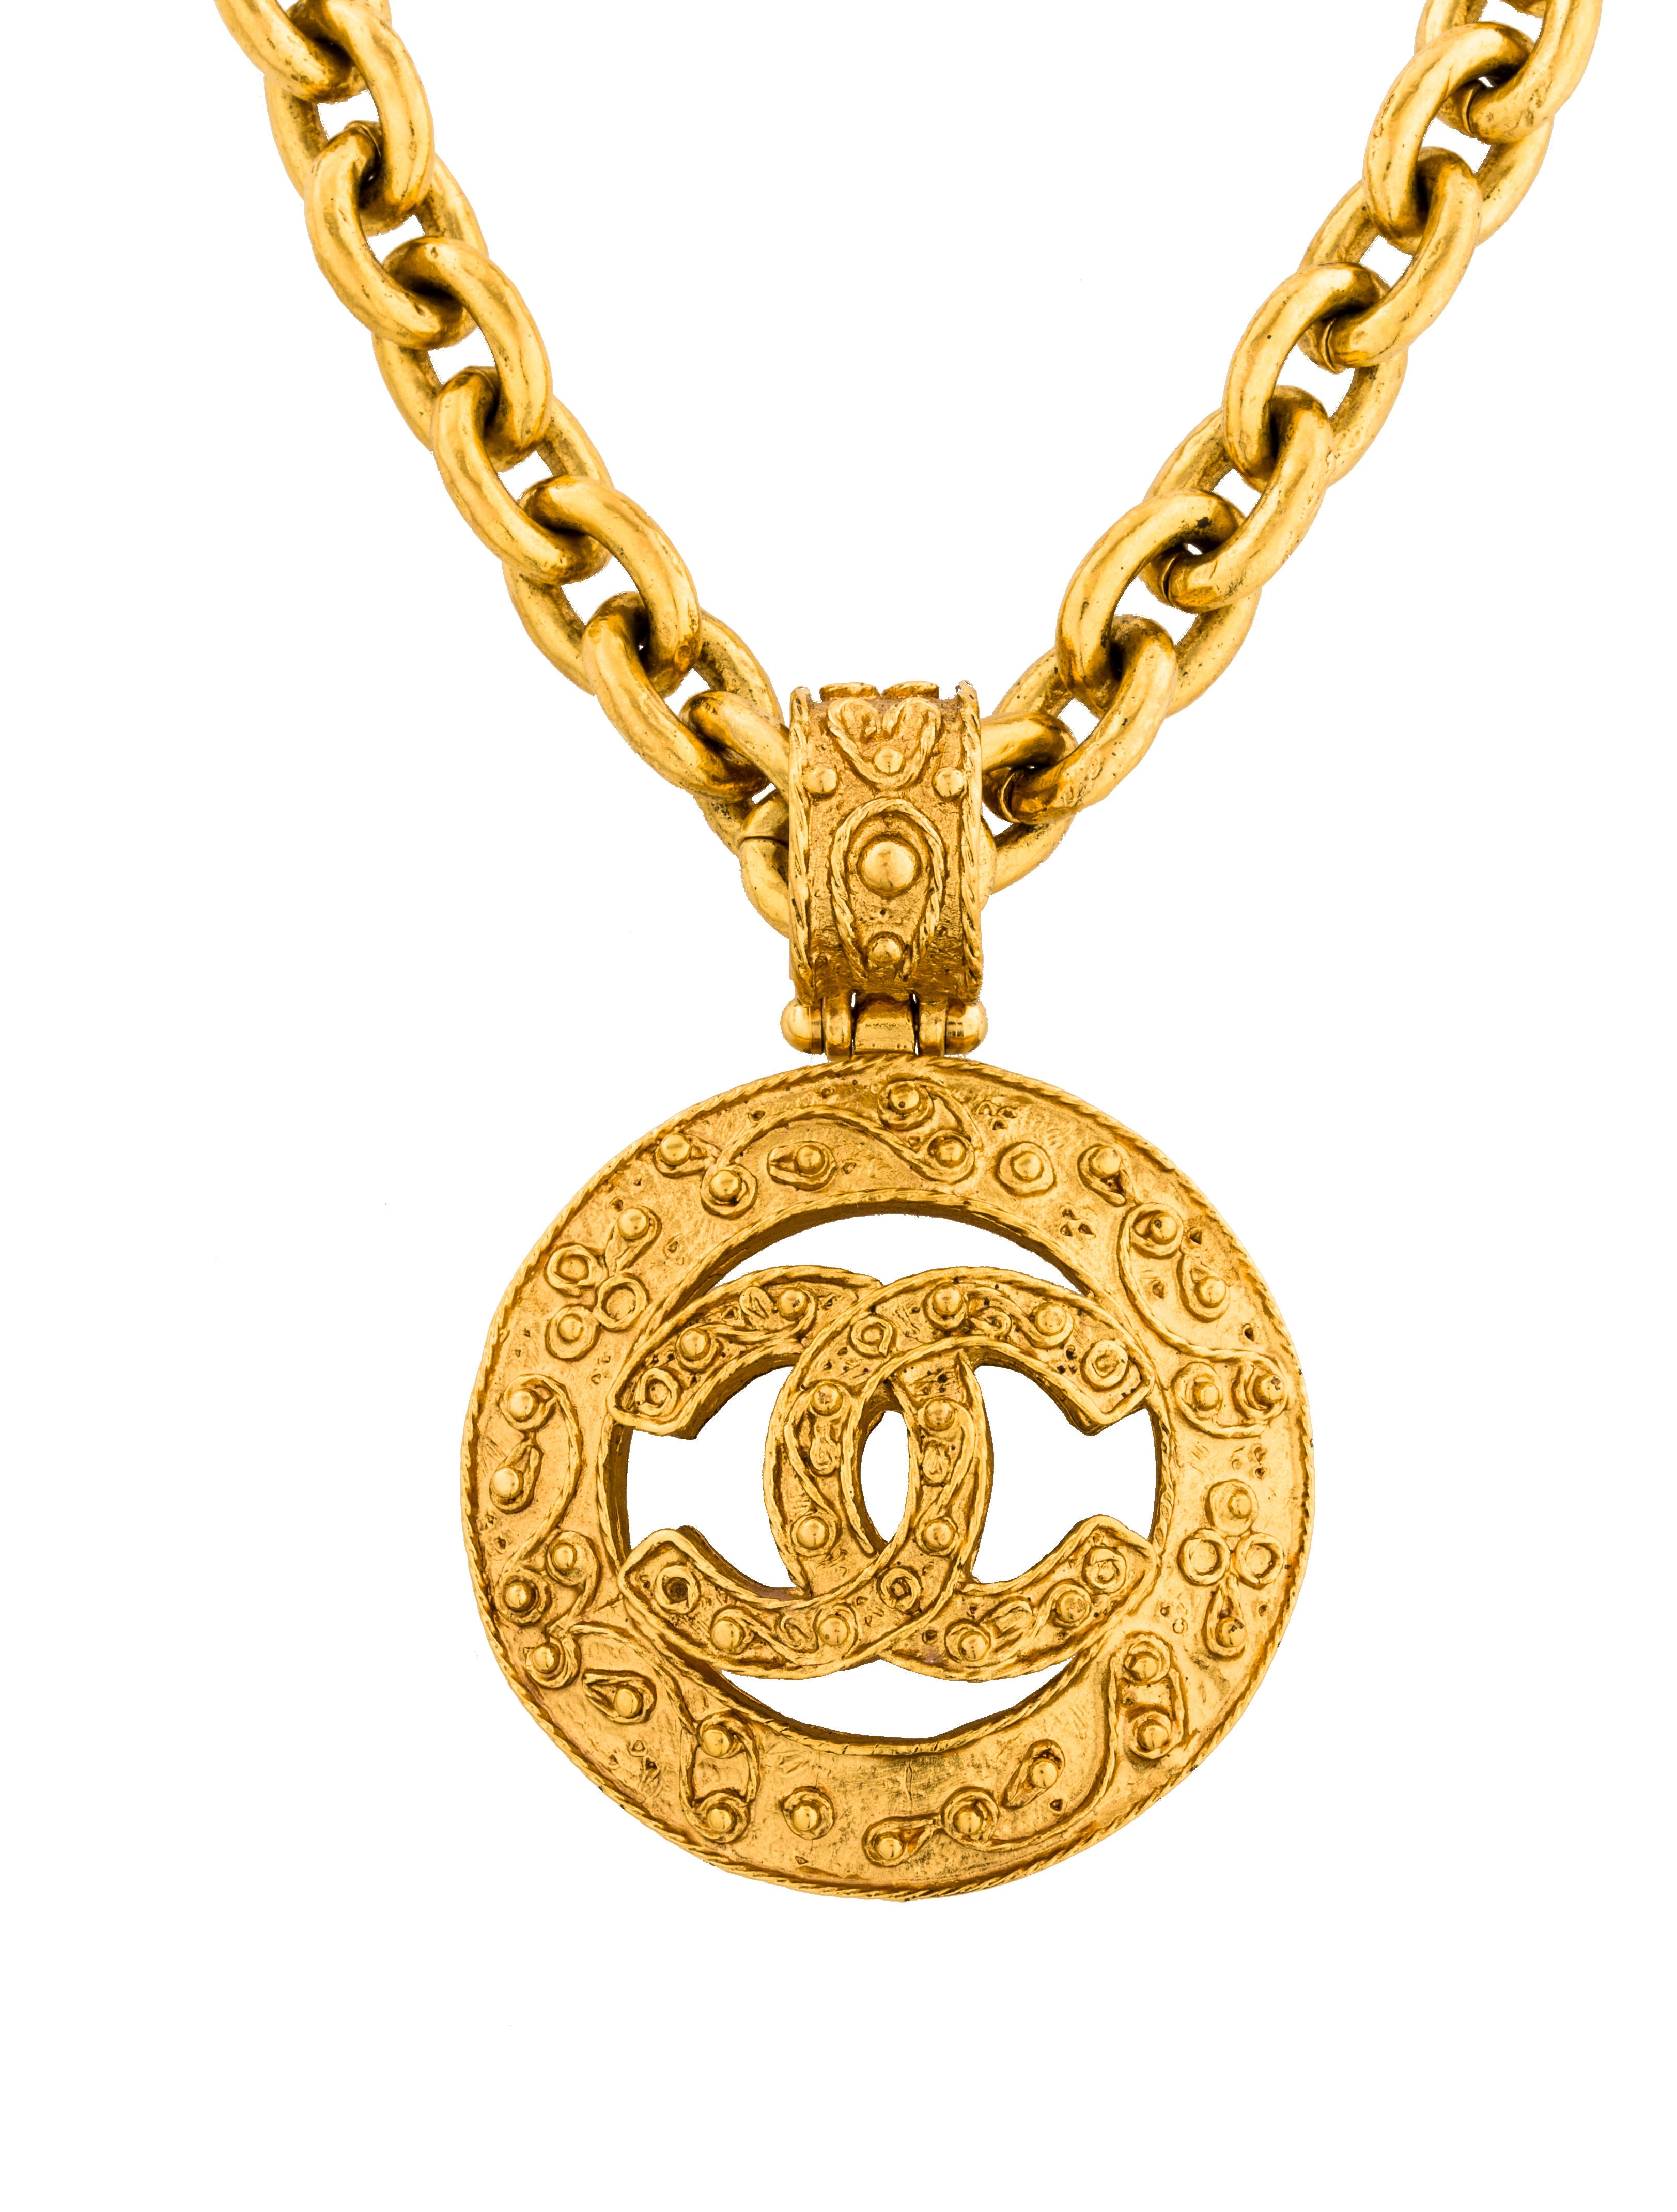 Chanel logo pendant necklace necklaces cha192245 the realreal logo pendant necklace aloadofball Image collections